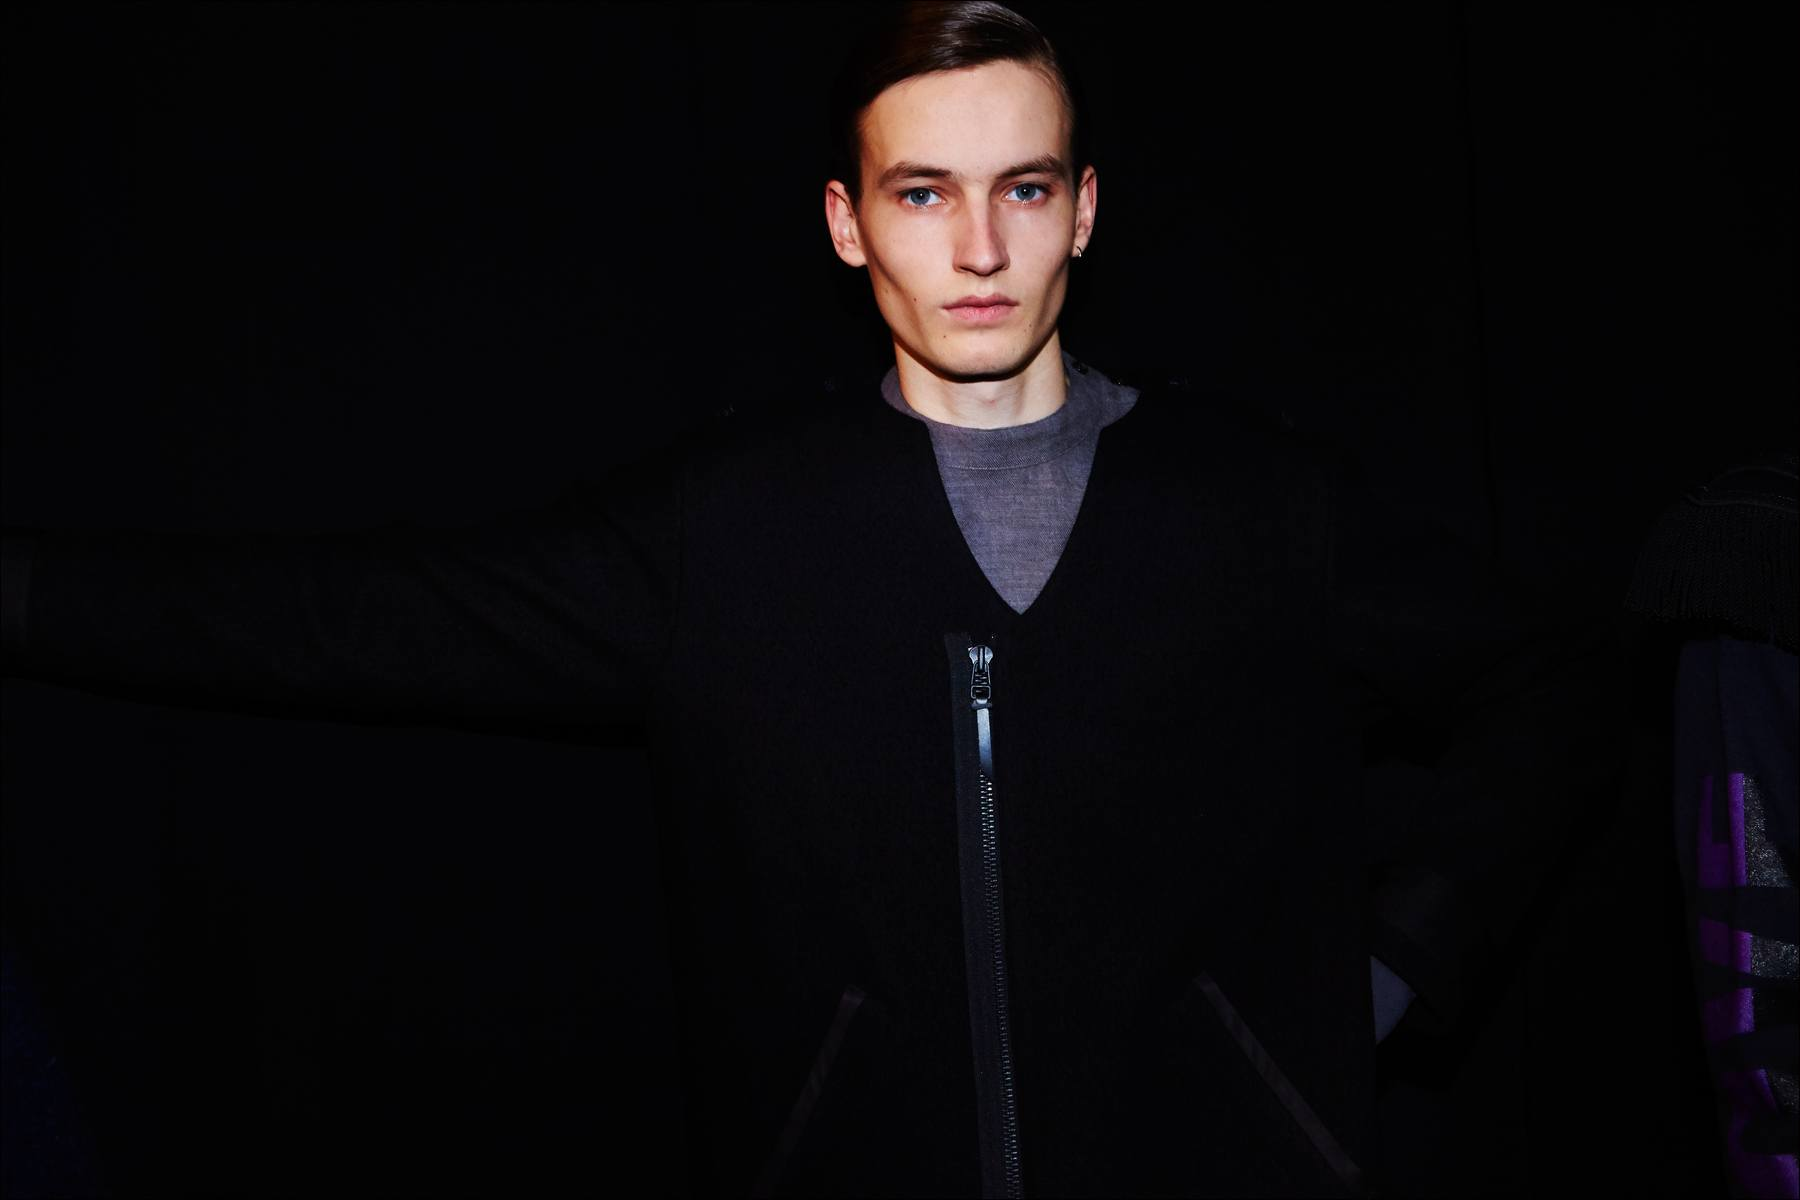 A male model photographed backstage at the Robert Geller Autumn/Winter 2017 menswear show in New York. Photography by Alexander Thompson for Ponyboy magazine.